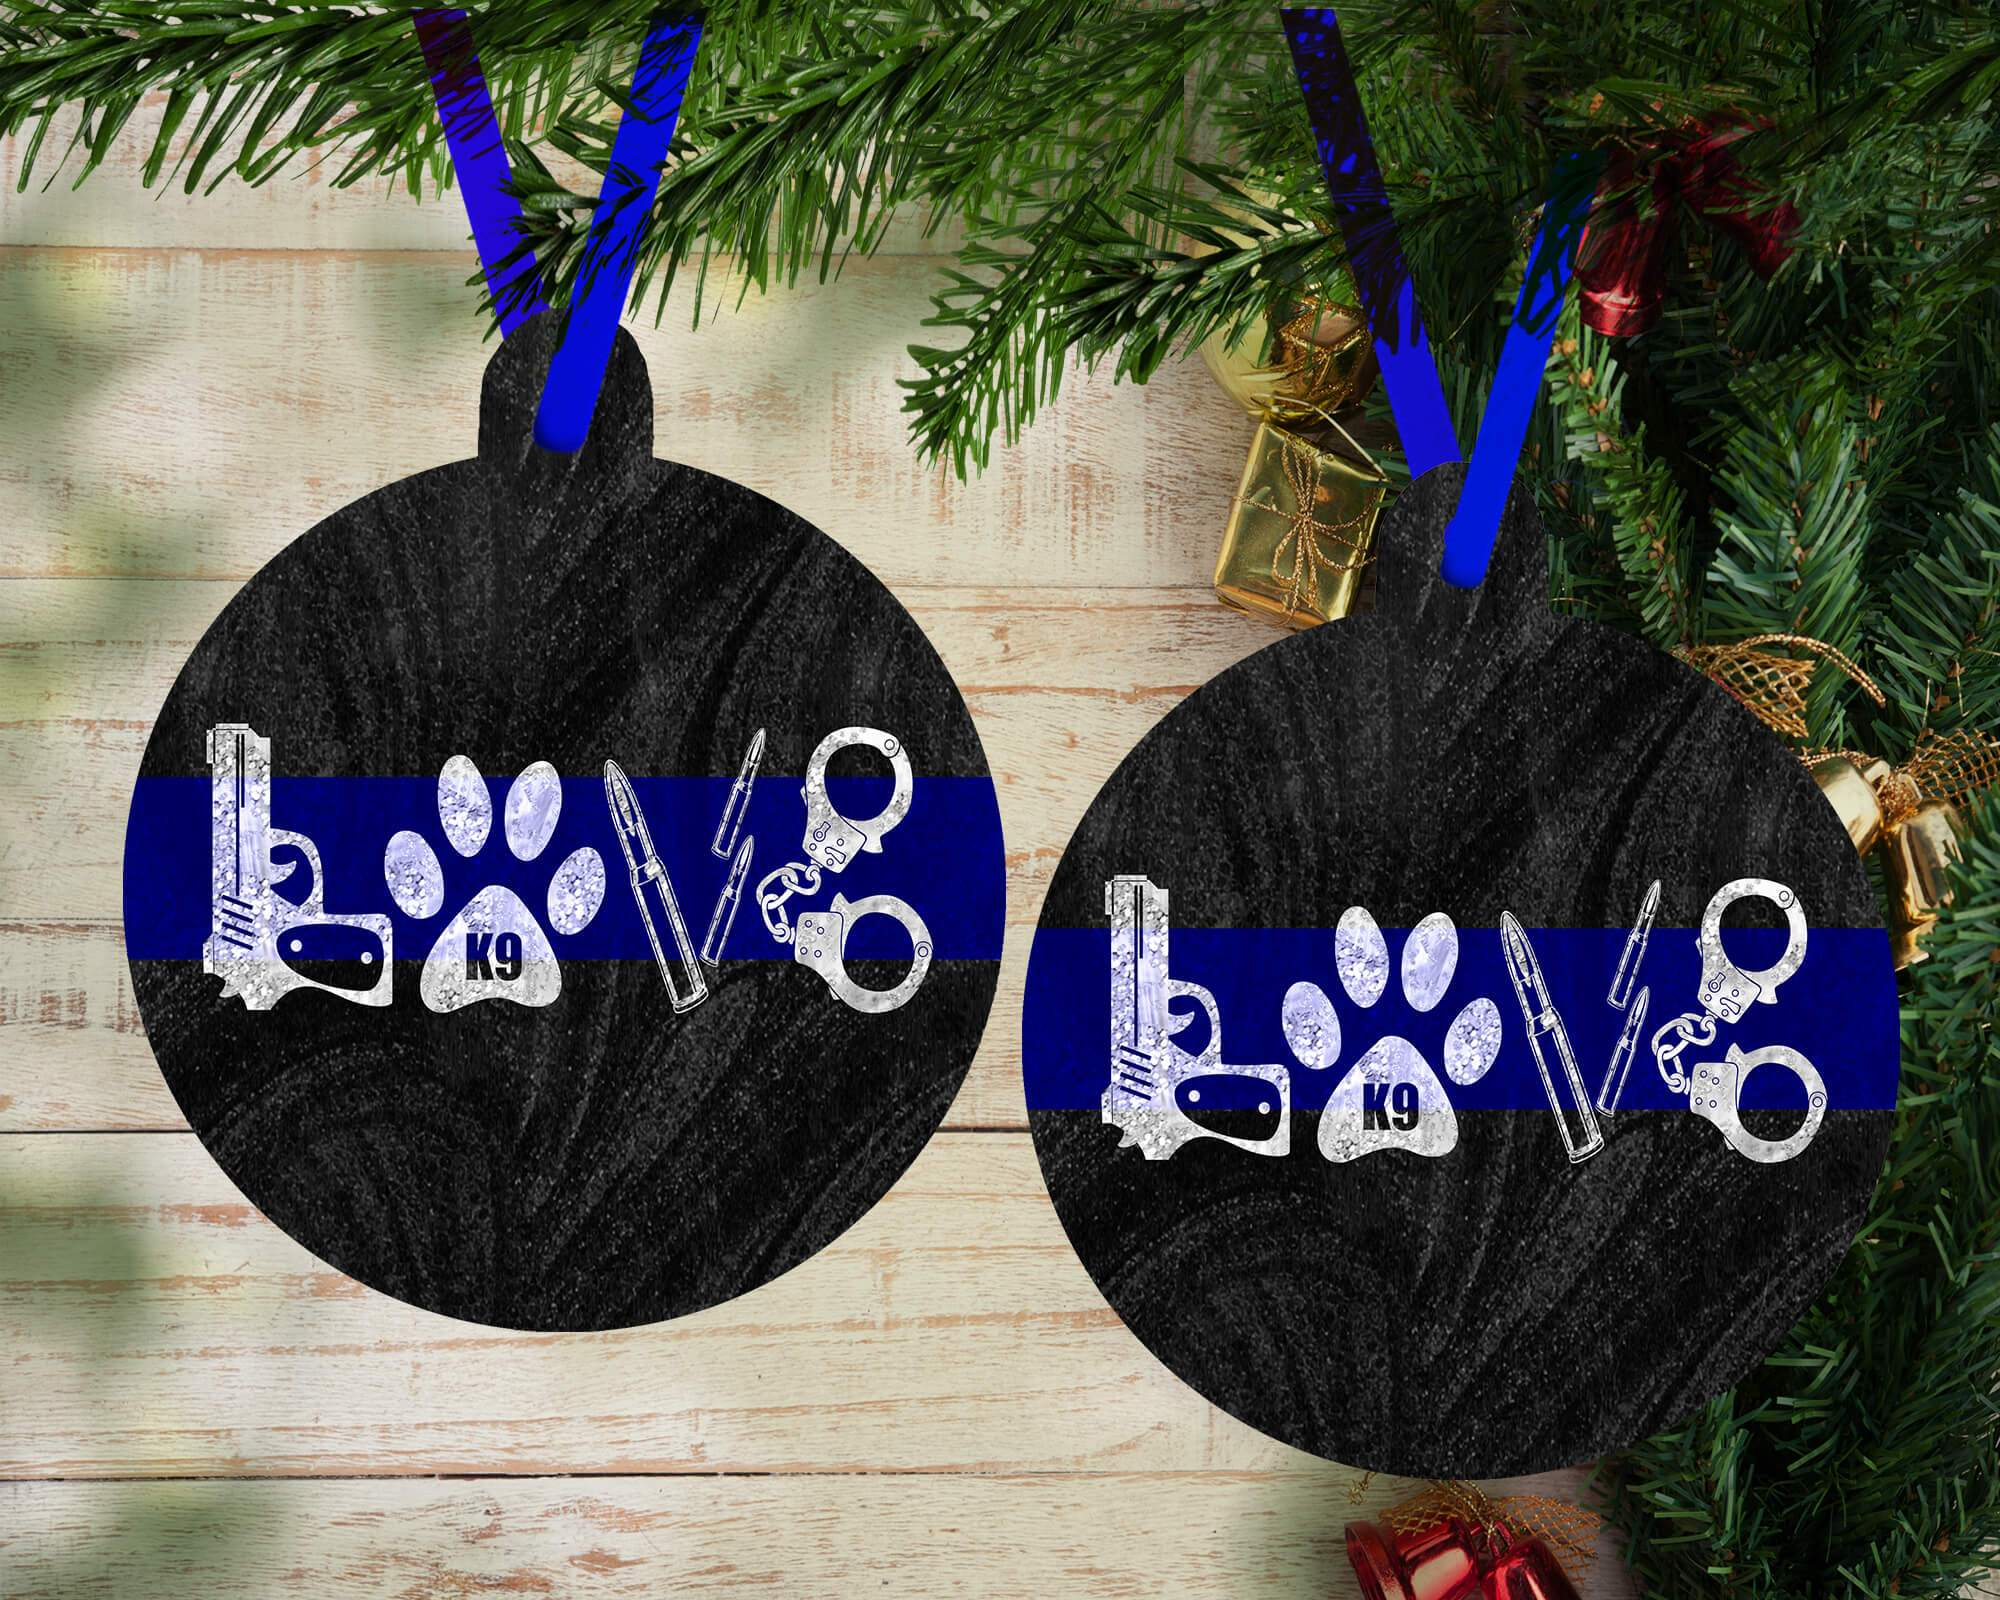 Police Christmas Ornaments.Police Love Holiday Ornament